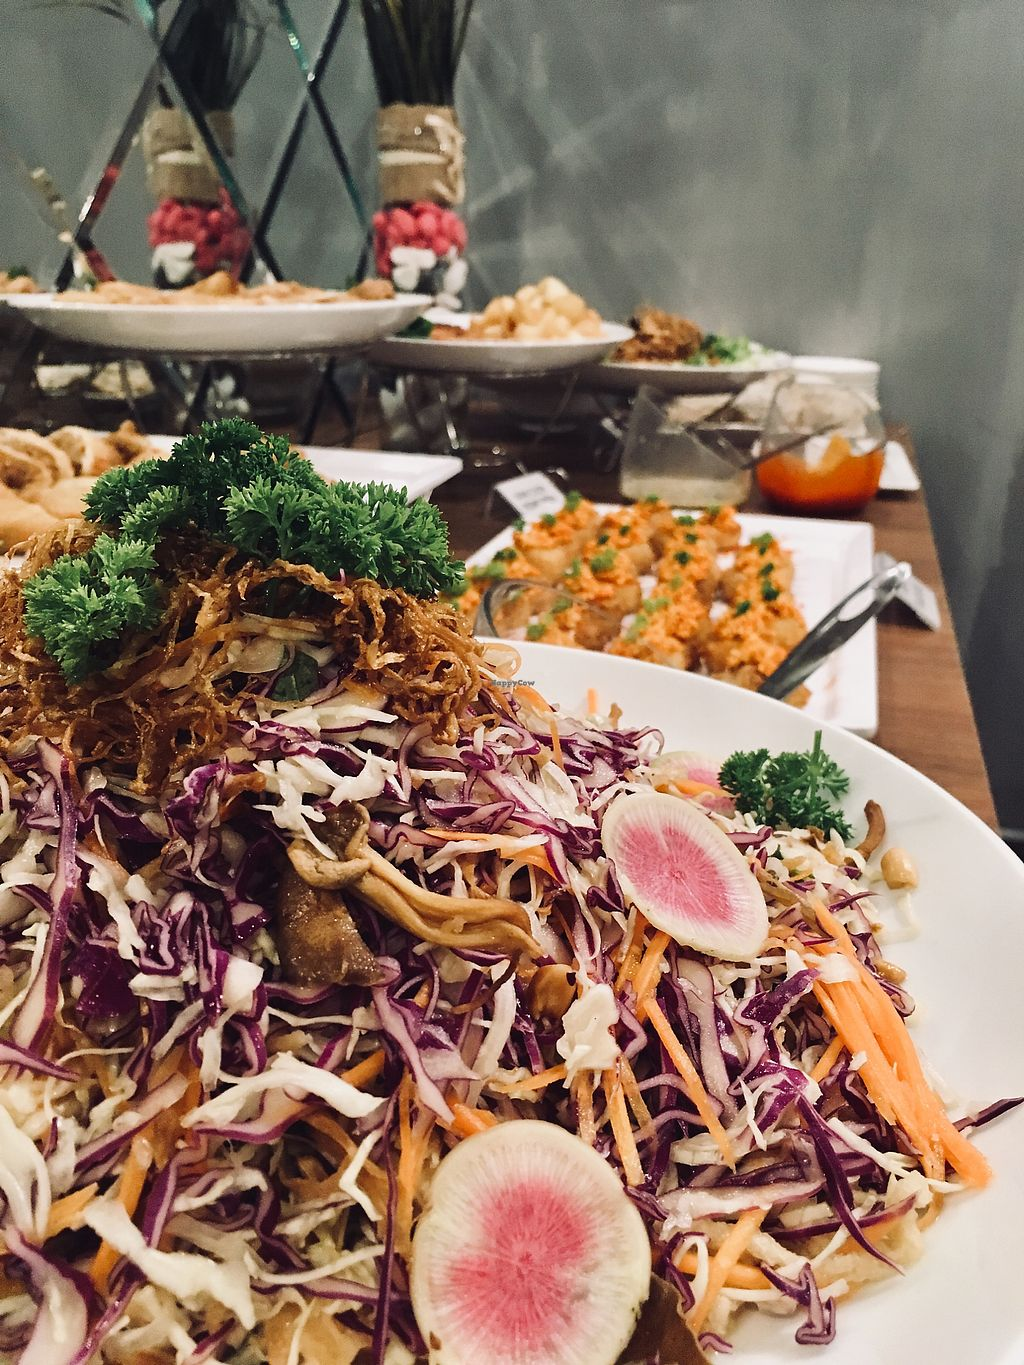 """Photo of Maha Vegan  by <a href=""""/members/profile/BastianSteinbach"""">BastianSteinbach</a> <br/> Vegan buffet 4 <br/> March 18, 2018  - <a href='/contact/abuse/image/111634/372207'>Report</a>"""